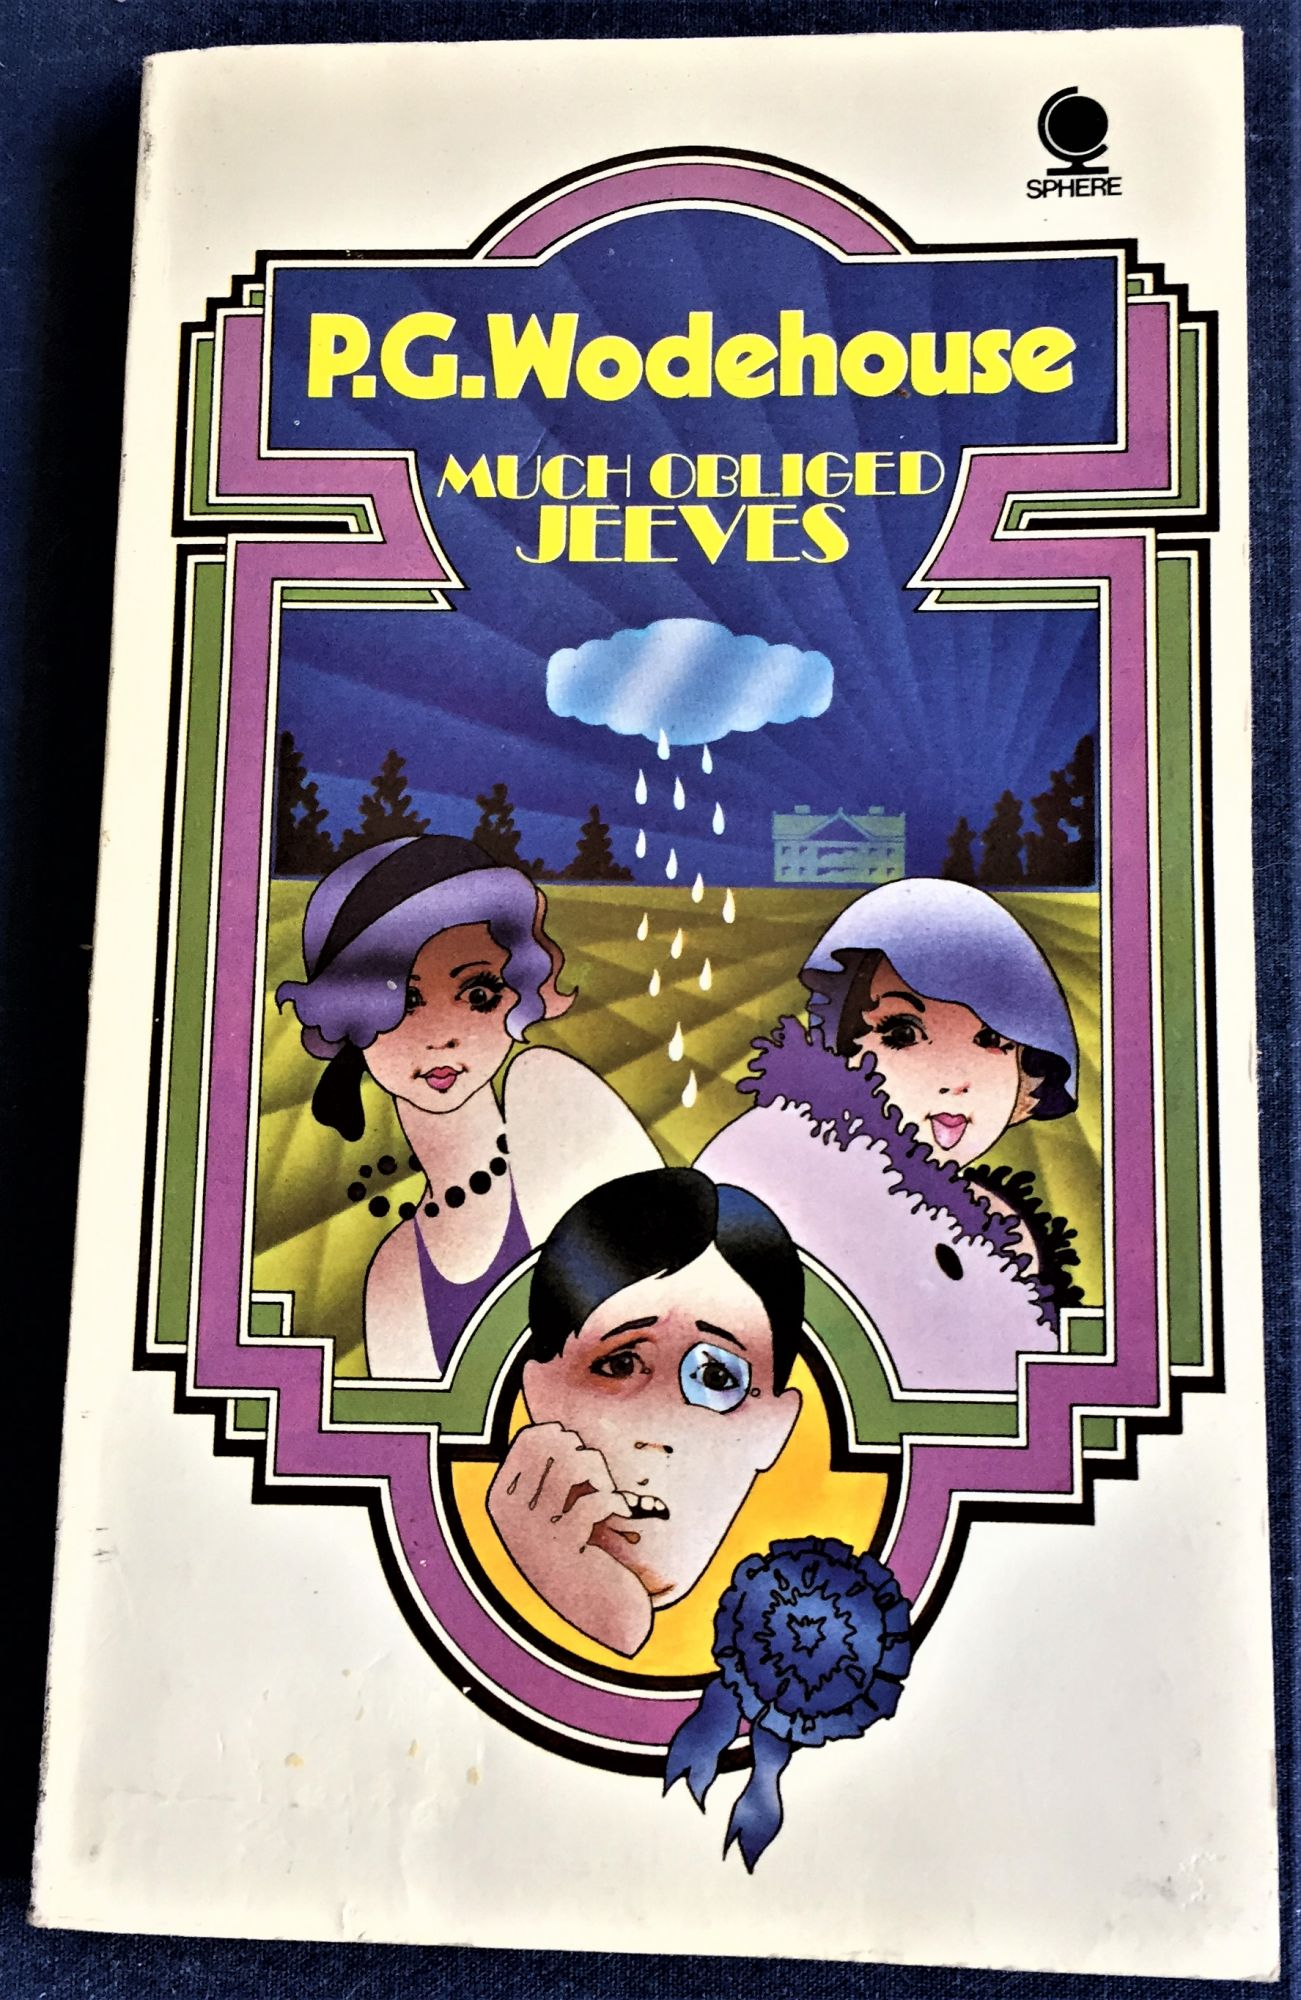 P G Wodehouse Much Obliged Jeeves 1972 Ebay Much obliged means that whatever was done is appreciated. ebay